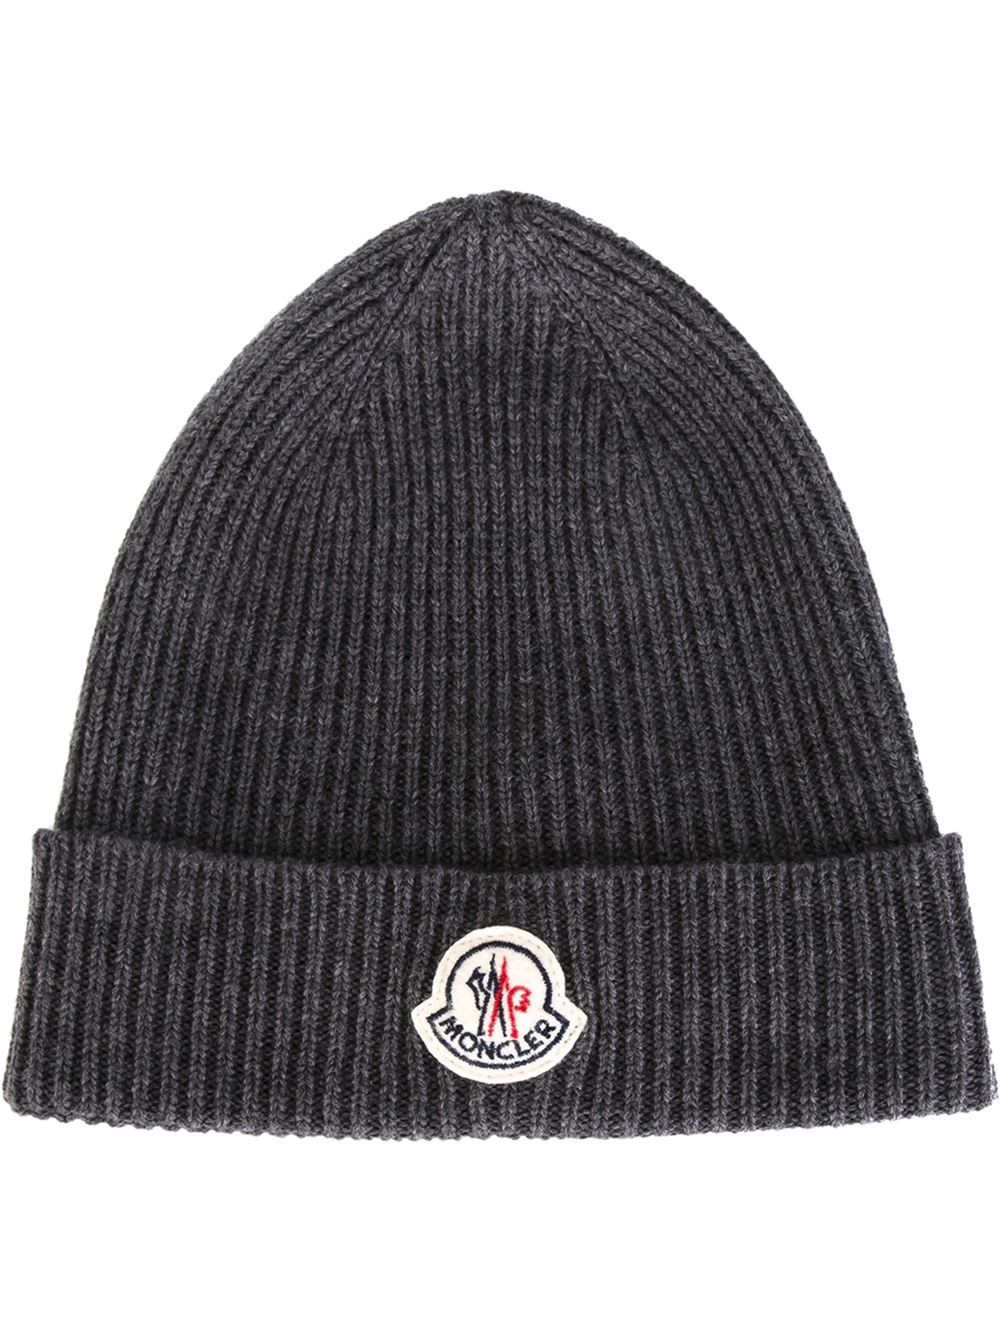 331f108e5c3 Moncler Beanie Hat. moncler cableknit beanie hat in blue for men ...